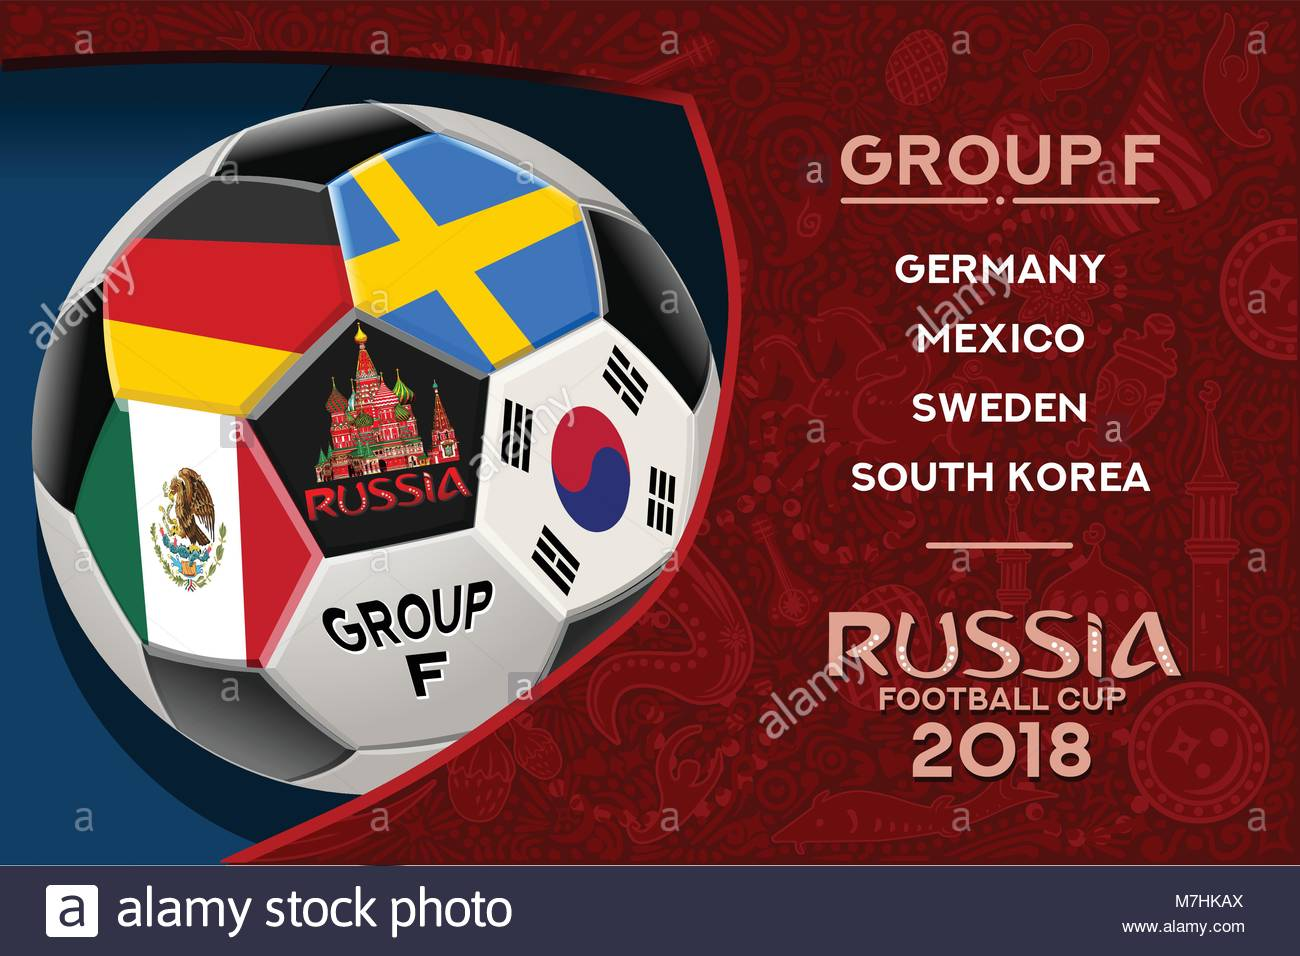 Russia World Cup 2018 Group F Wallpaper With Russian Pattern And